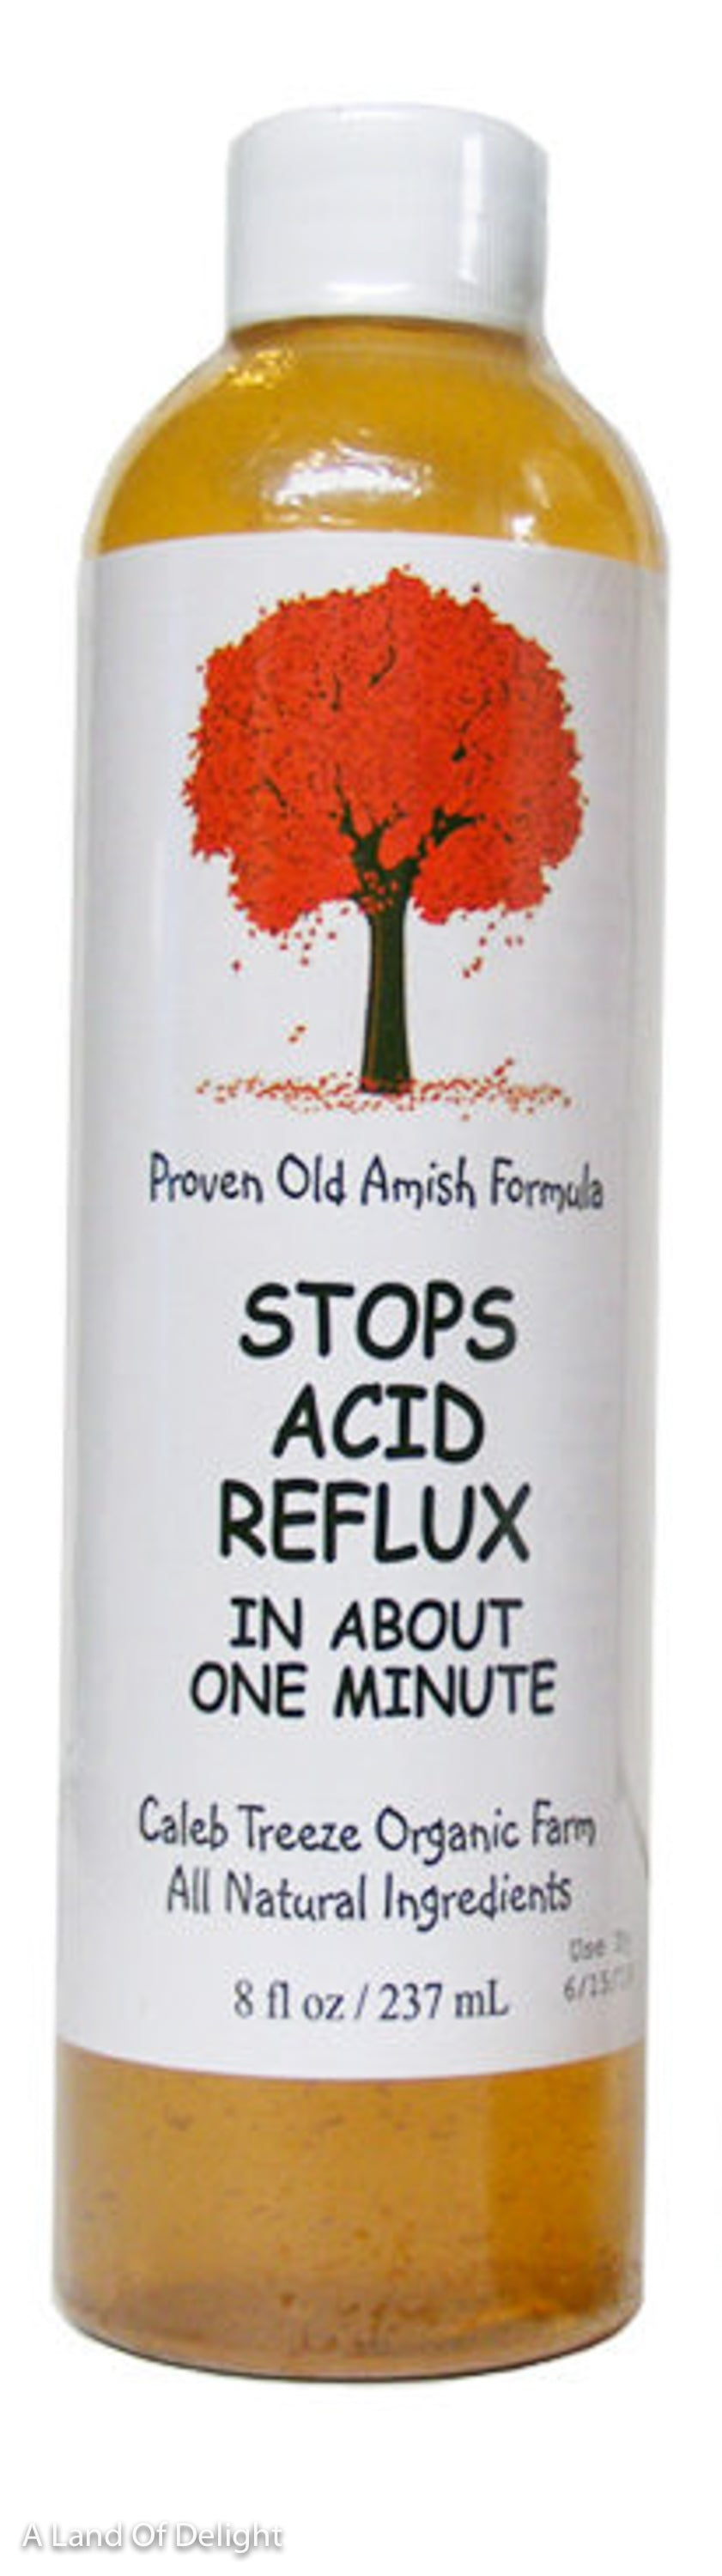 Stops Acid Reflux by Caleb Treeze